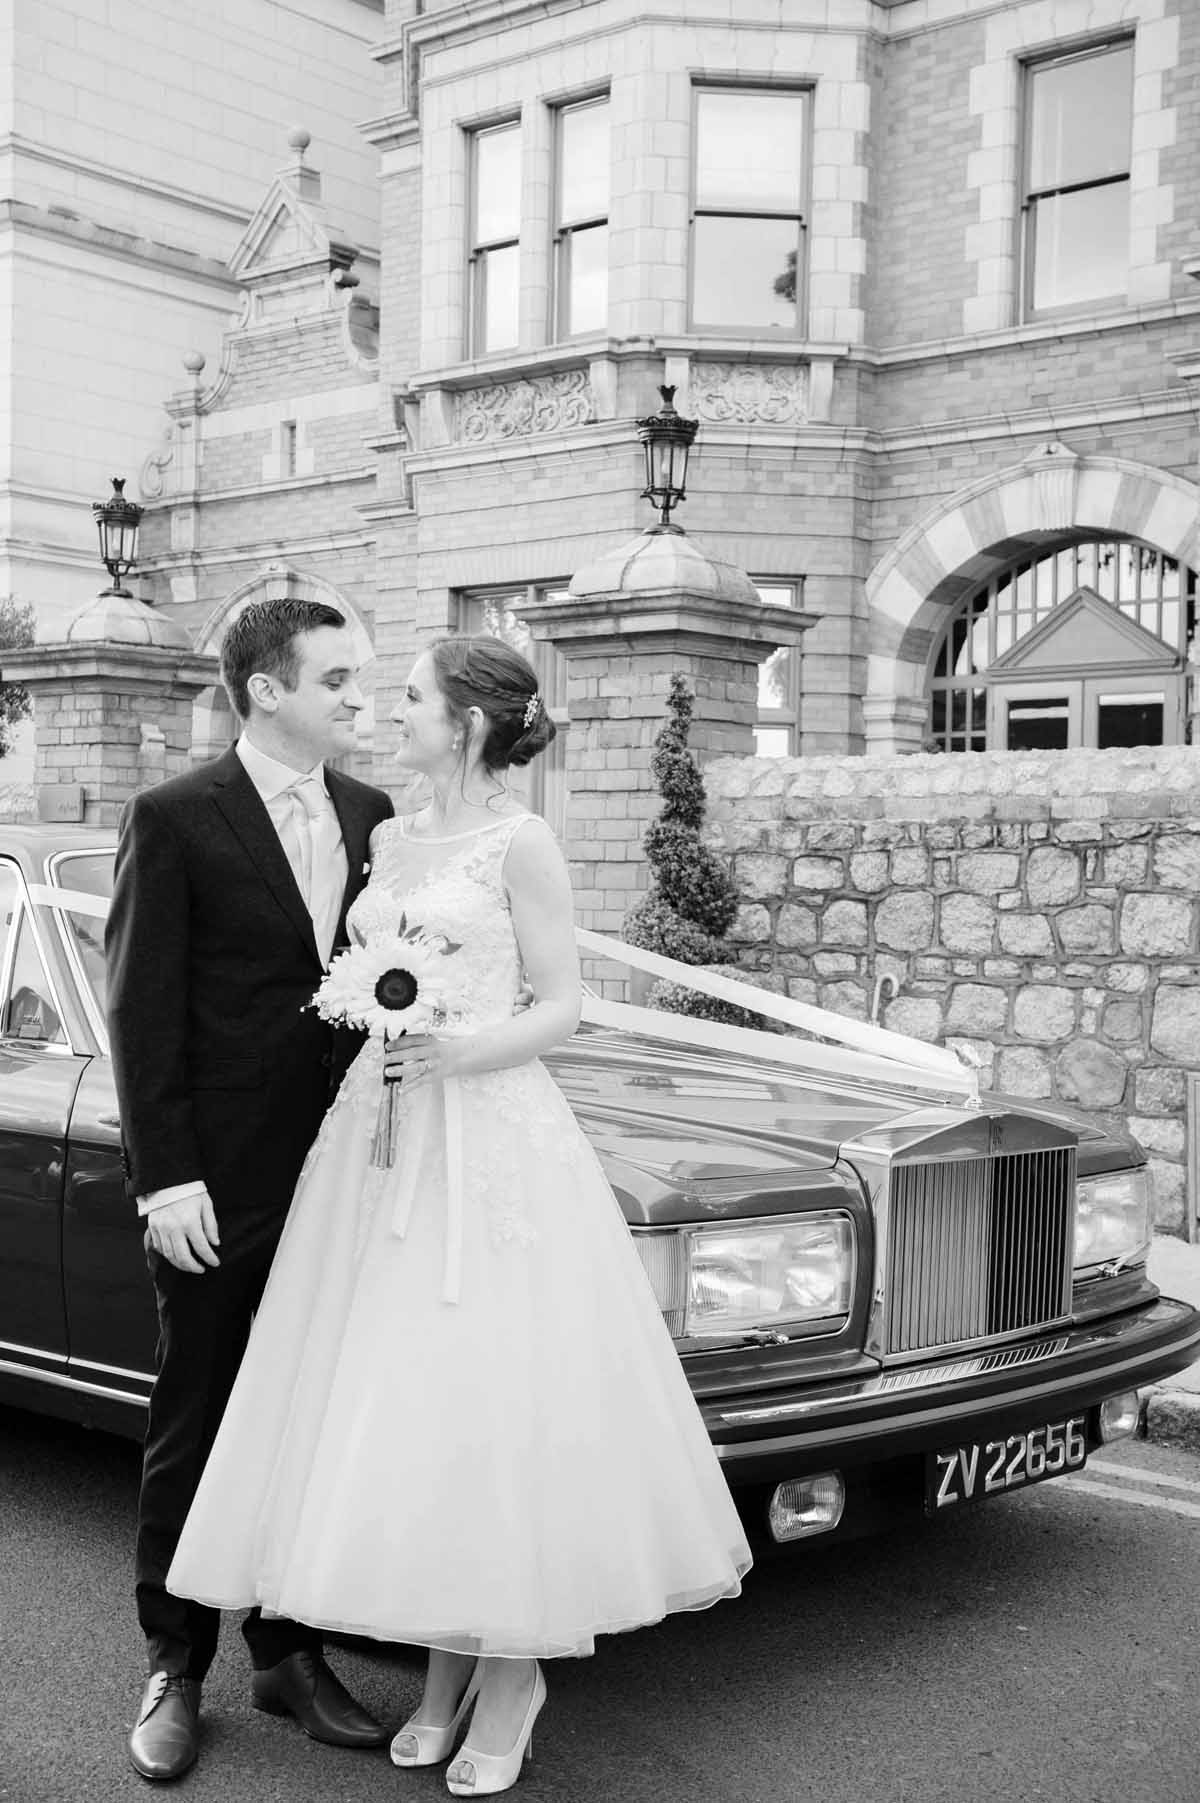 Dylan Hotel Wedding Reception Photograph